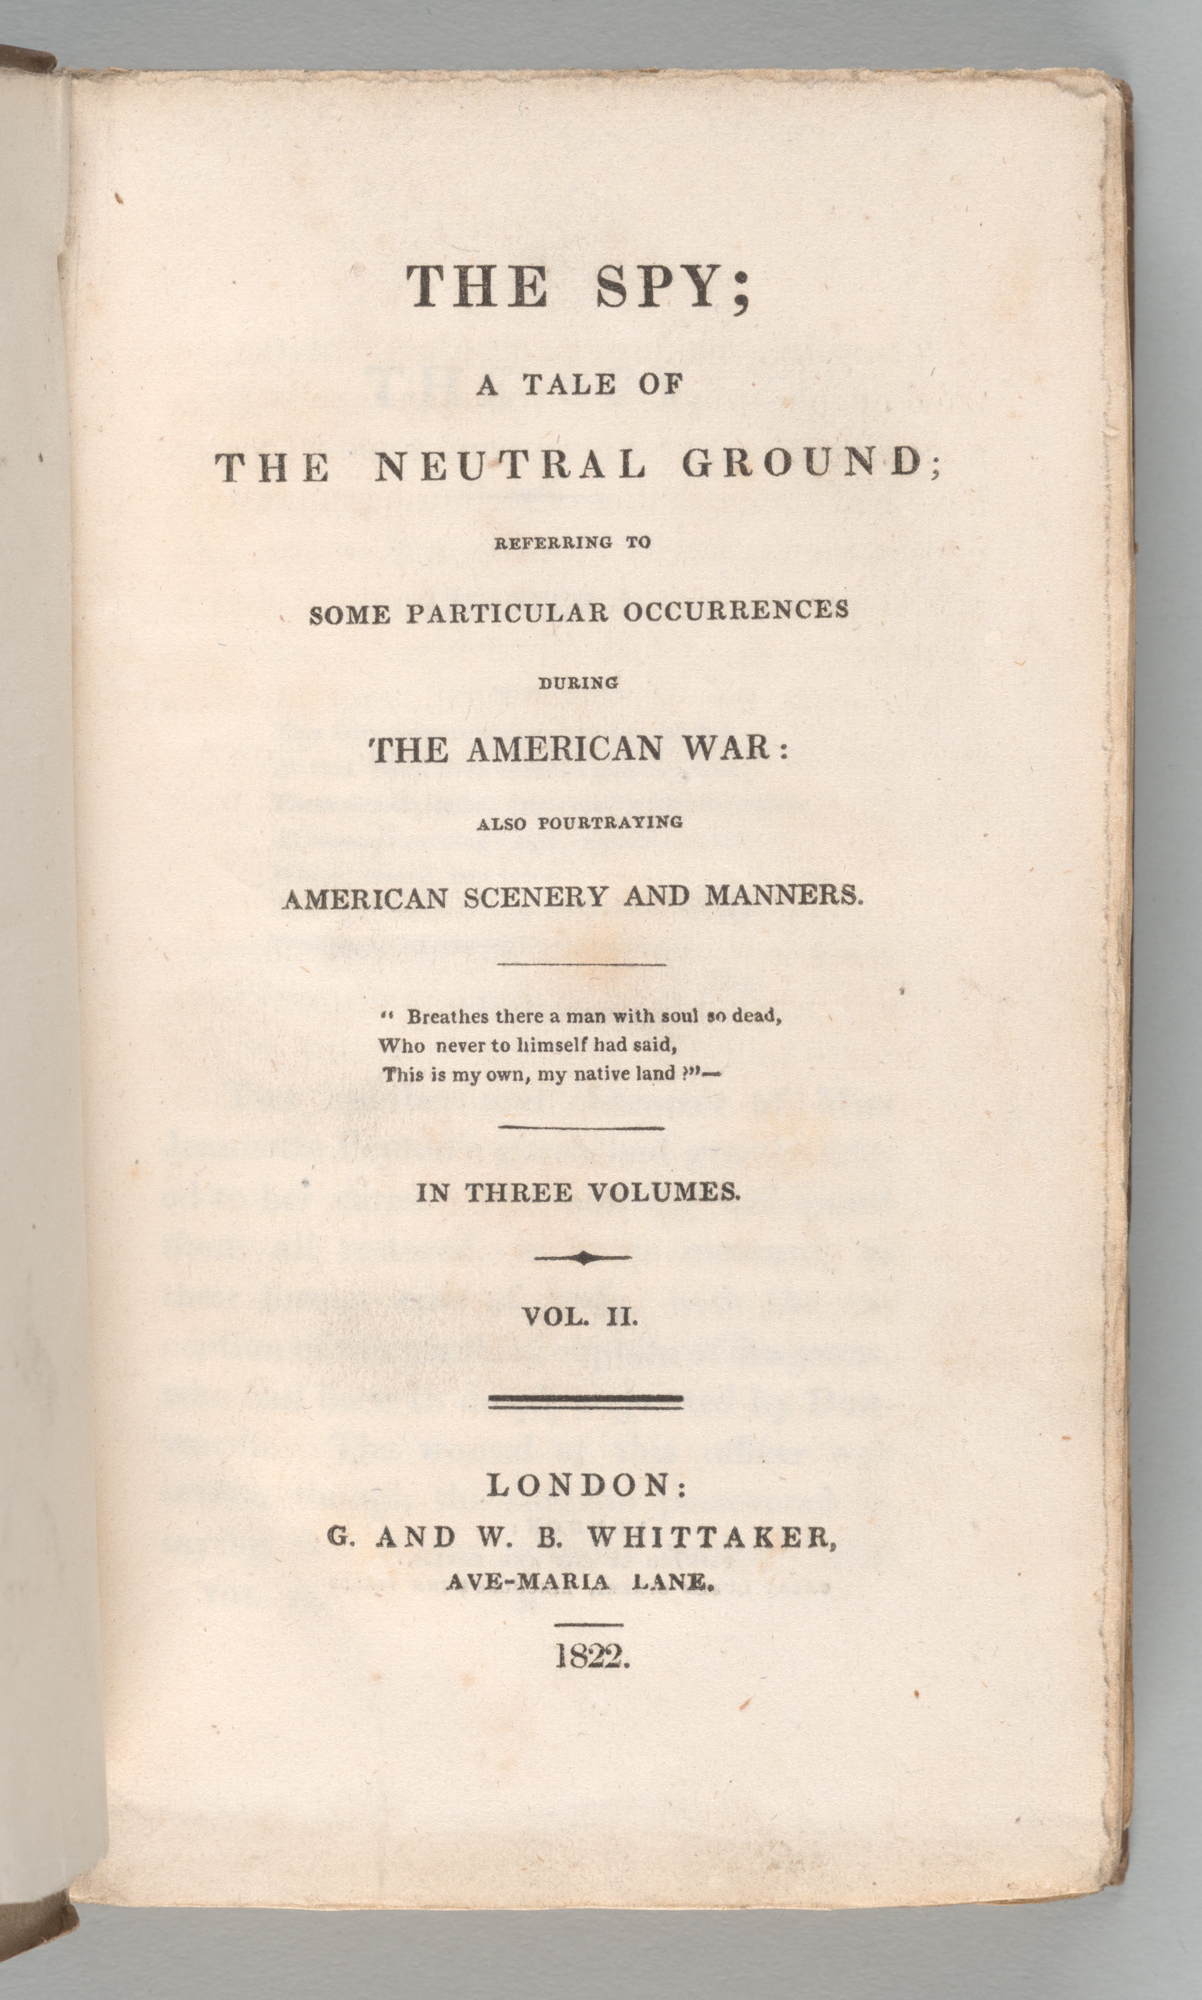 The Spy, title page